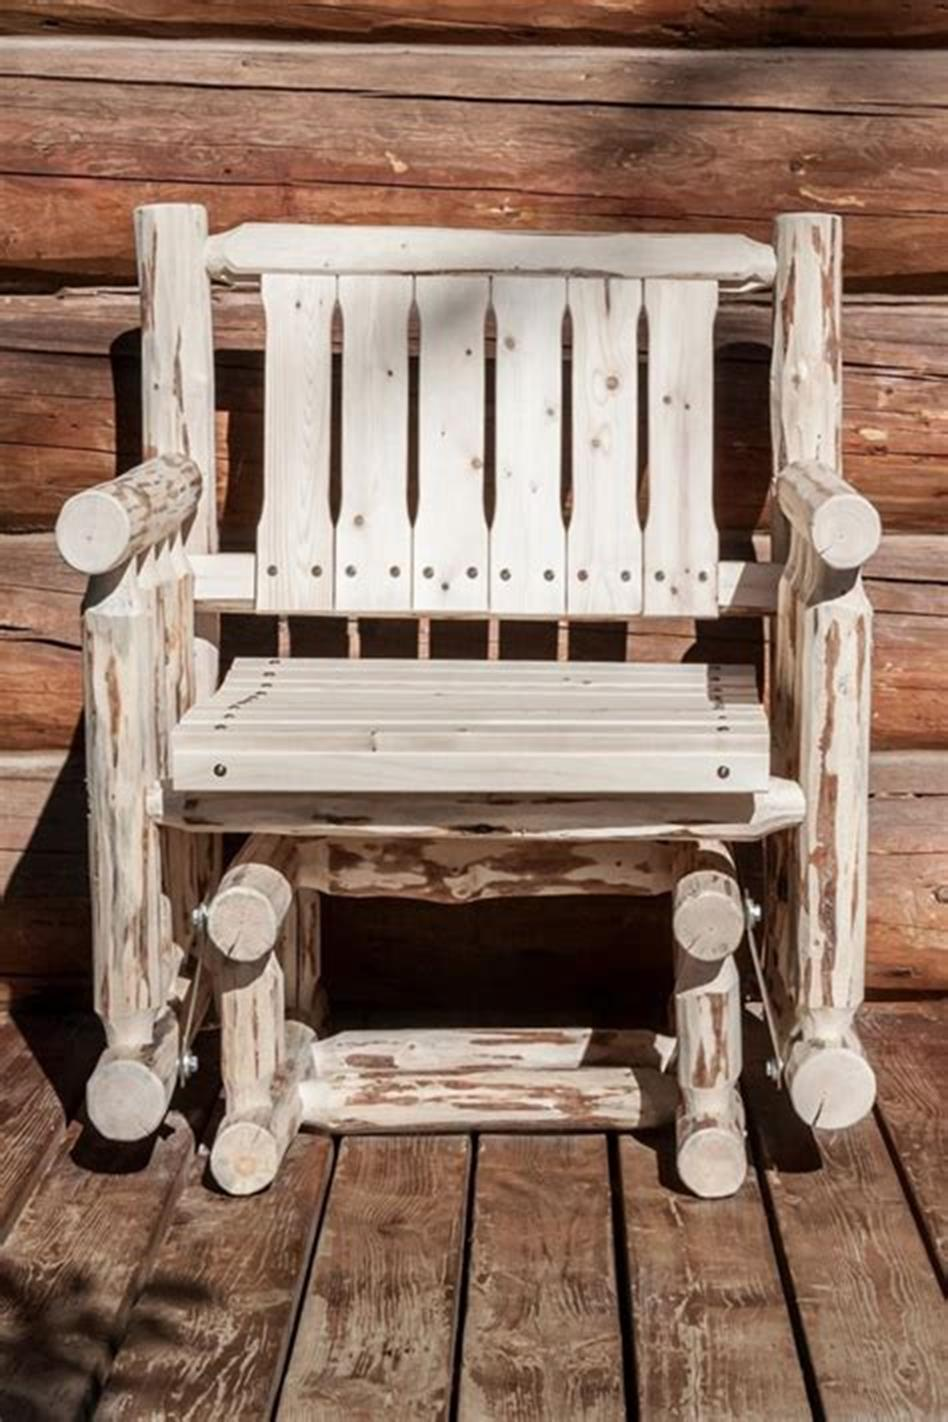 45 Perfect Rustic Porch Furniture Ideas for 2019 41